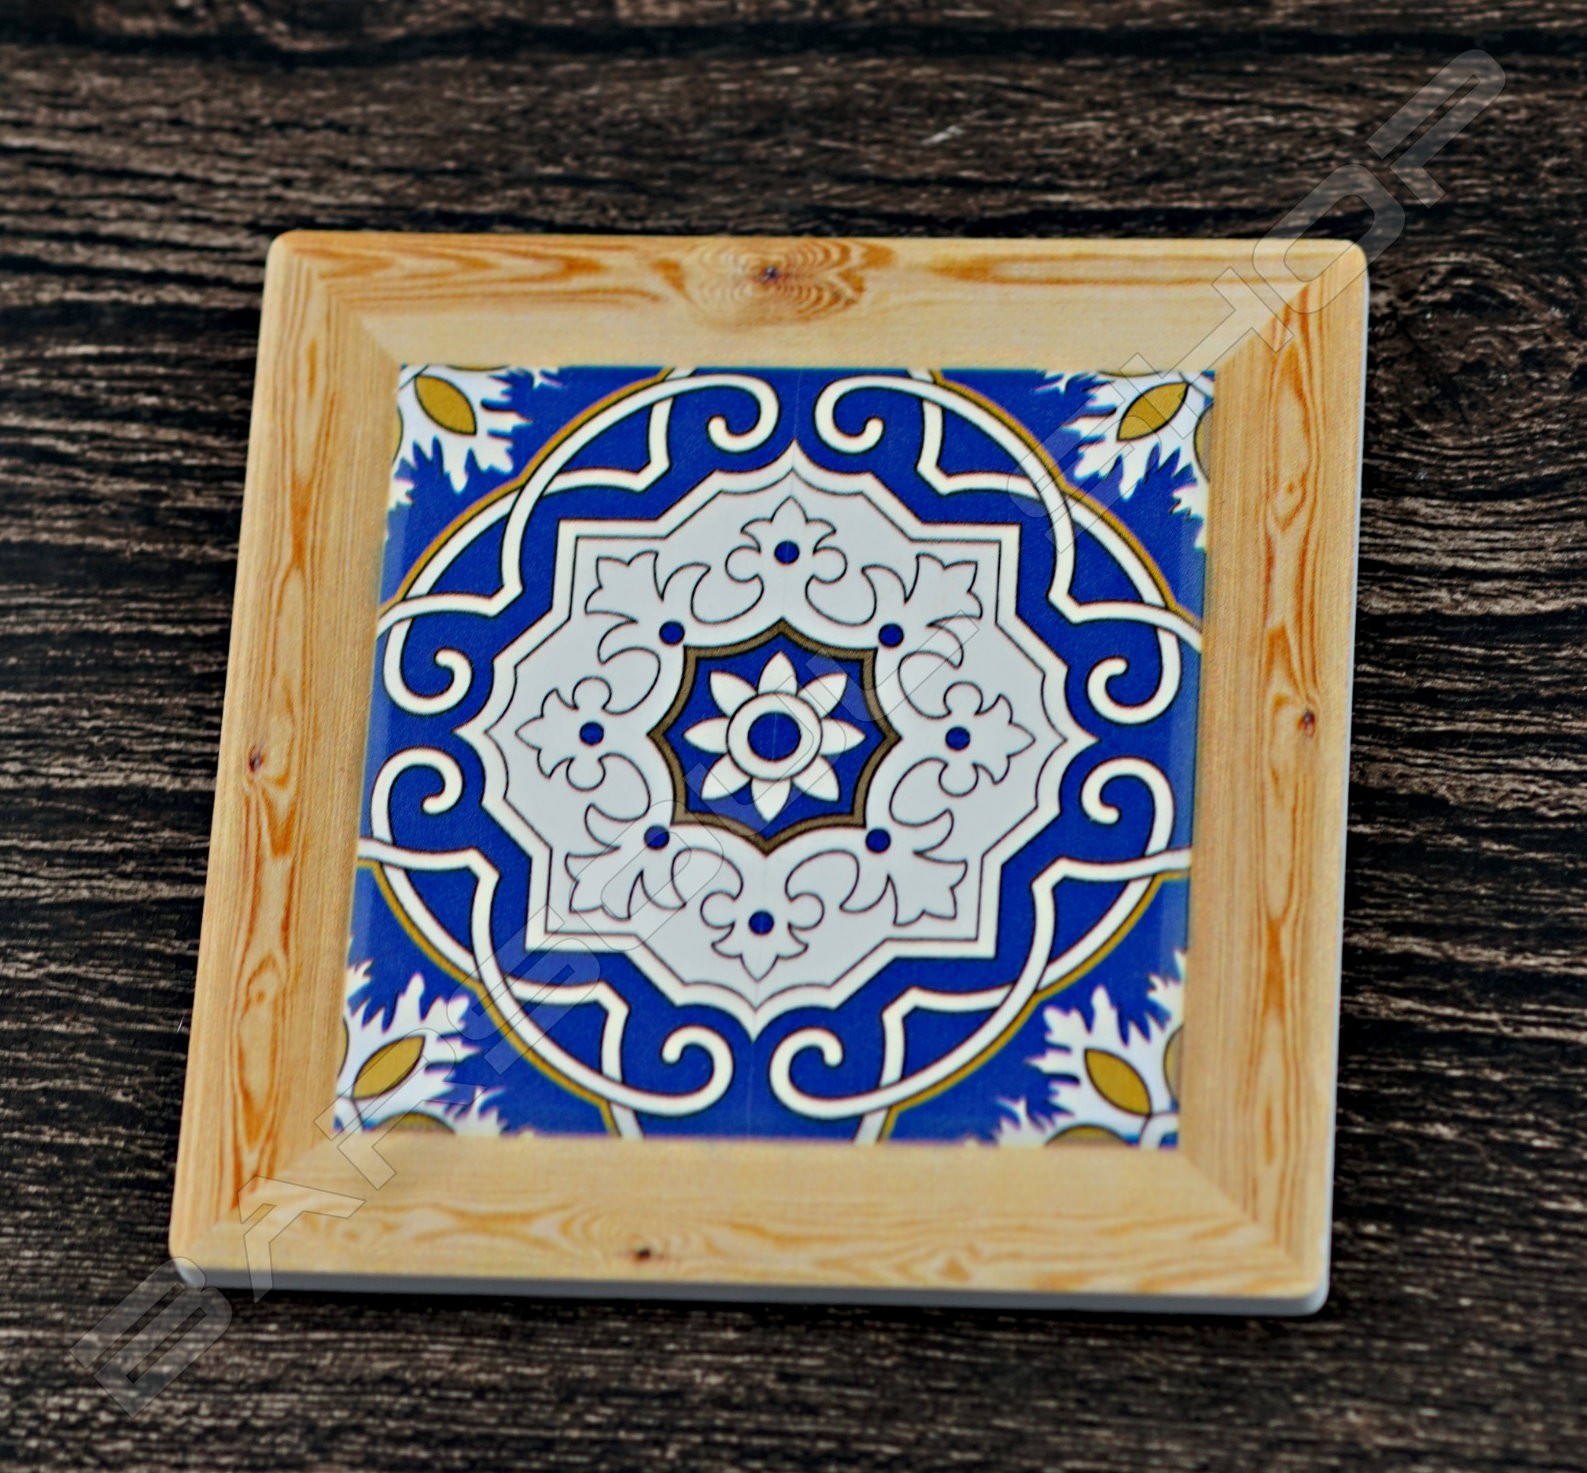 方形陶瓷杯墊(A) Square ceramics coaster